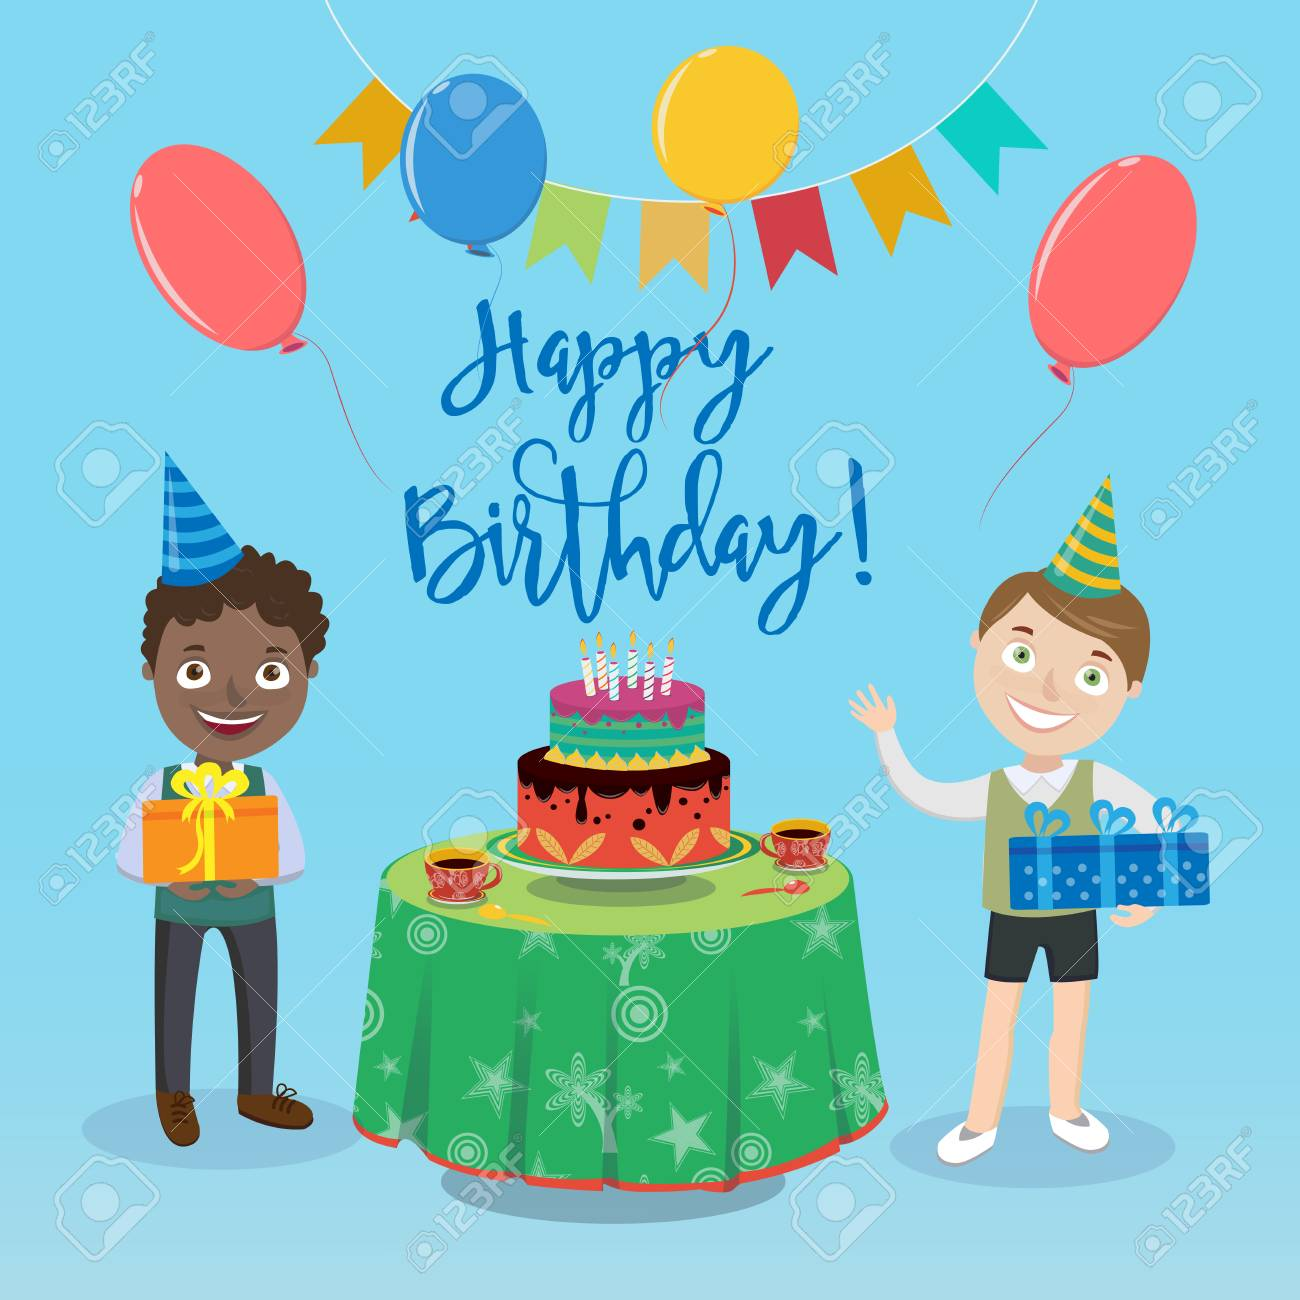 Happy Birthday Greeting Card With Boys And Cake Vector Illustration Stock